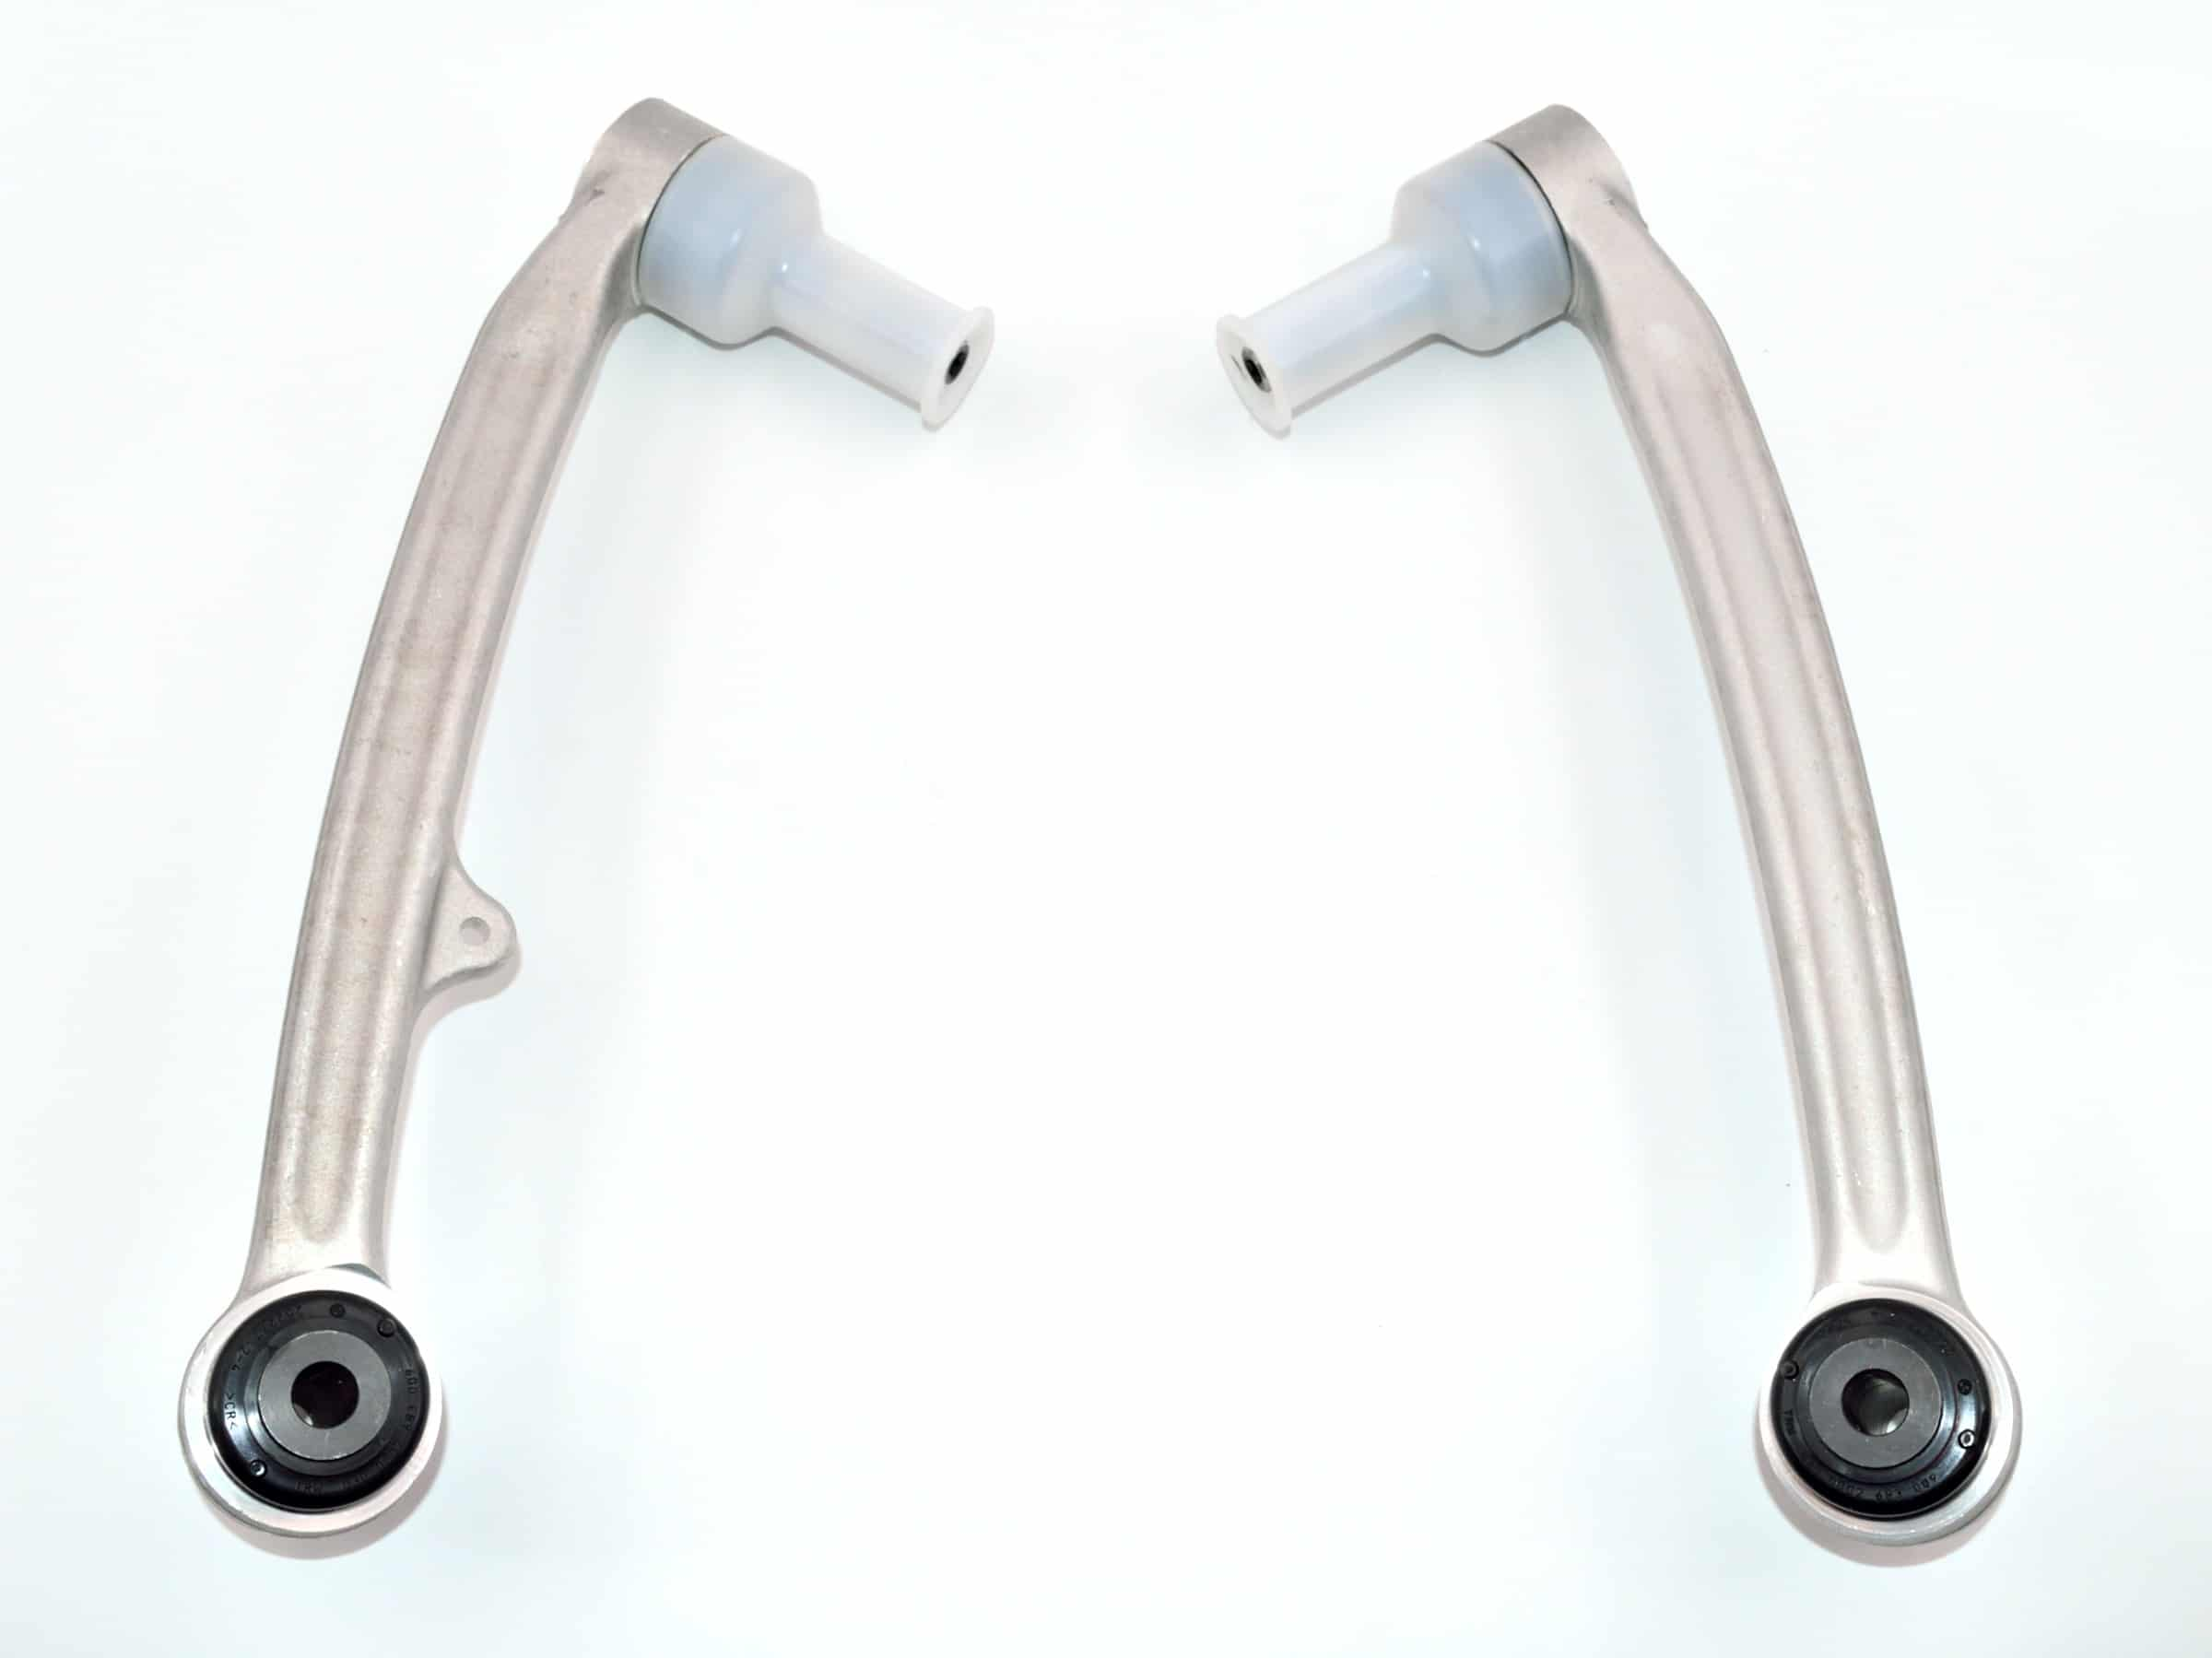 GAS BMW E82 1M & E90 M3 TRW-GAS Front Control Arms and Monoball Kit